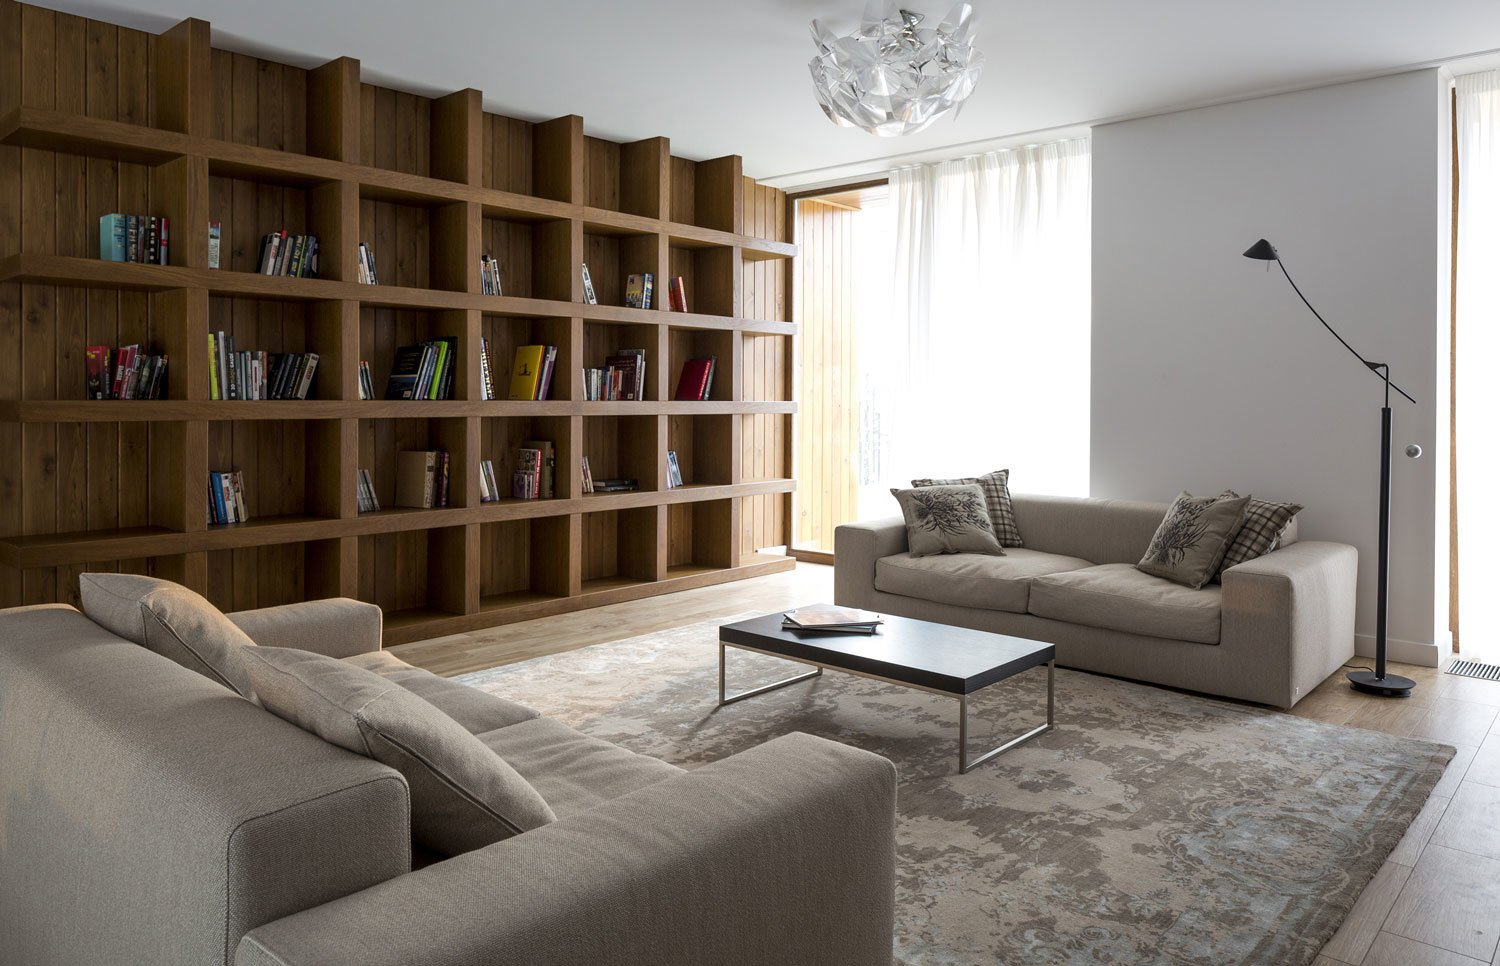 A built-in larch bookshelf occupies an entire wall on the second floor den.